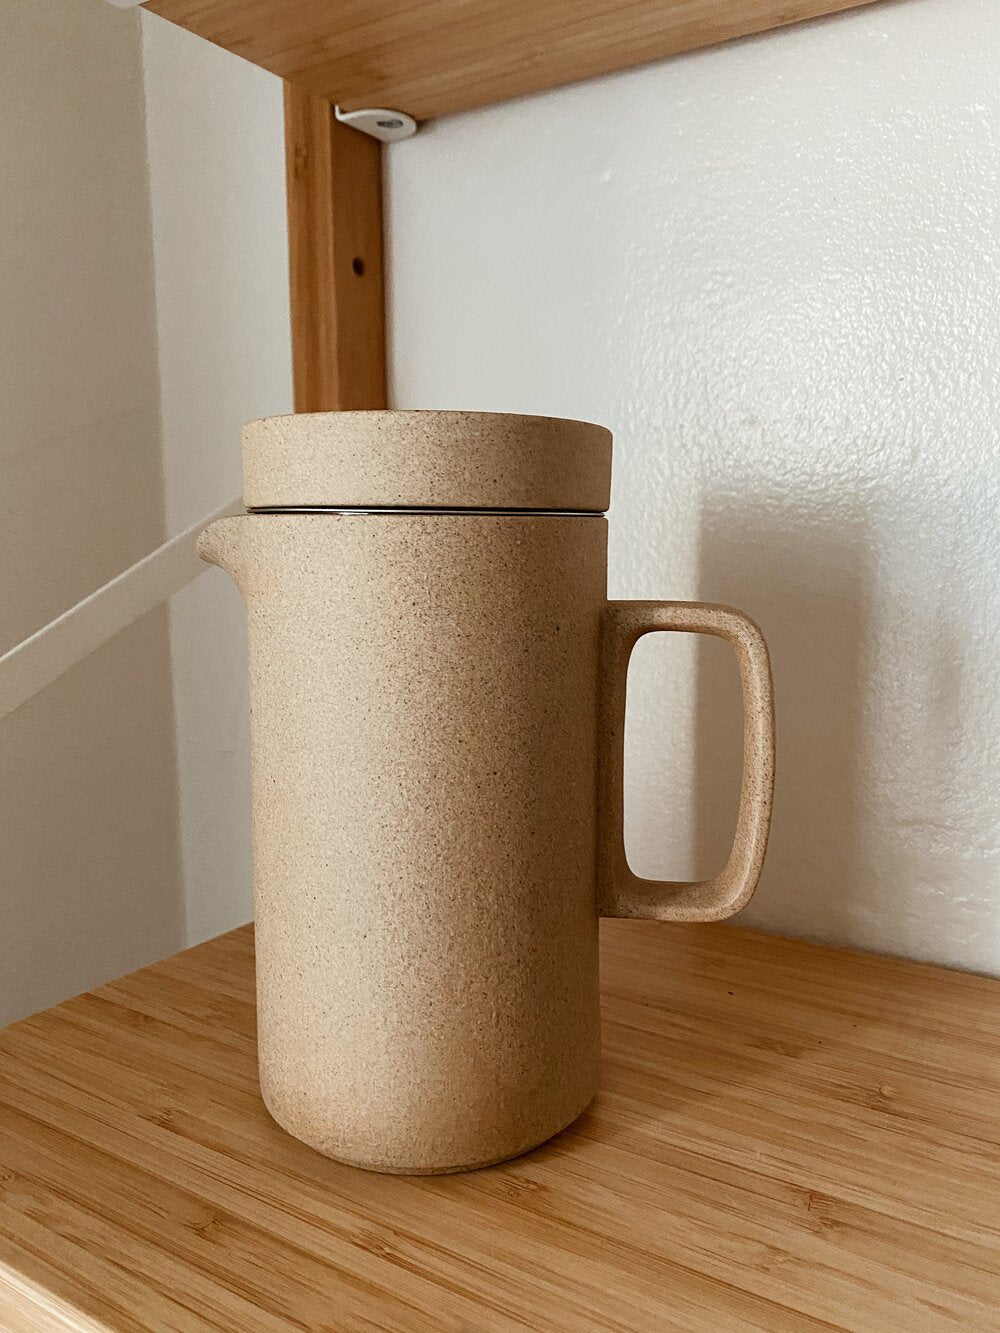 Hasami Porcelain Stoneware Pitcher/Tea Maker